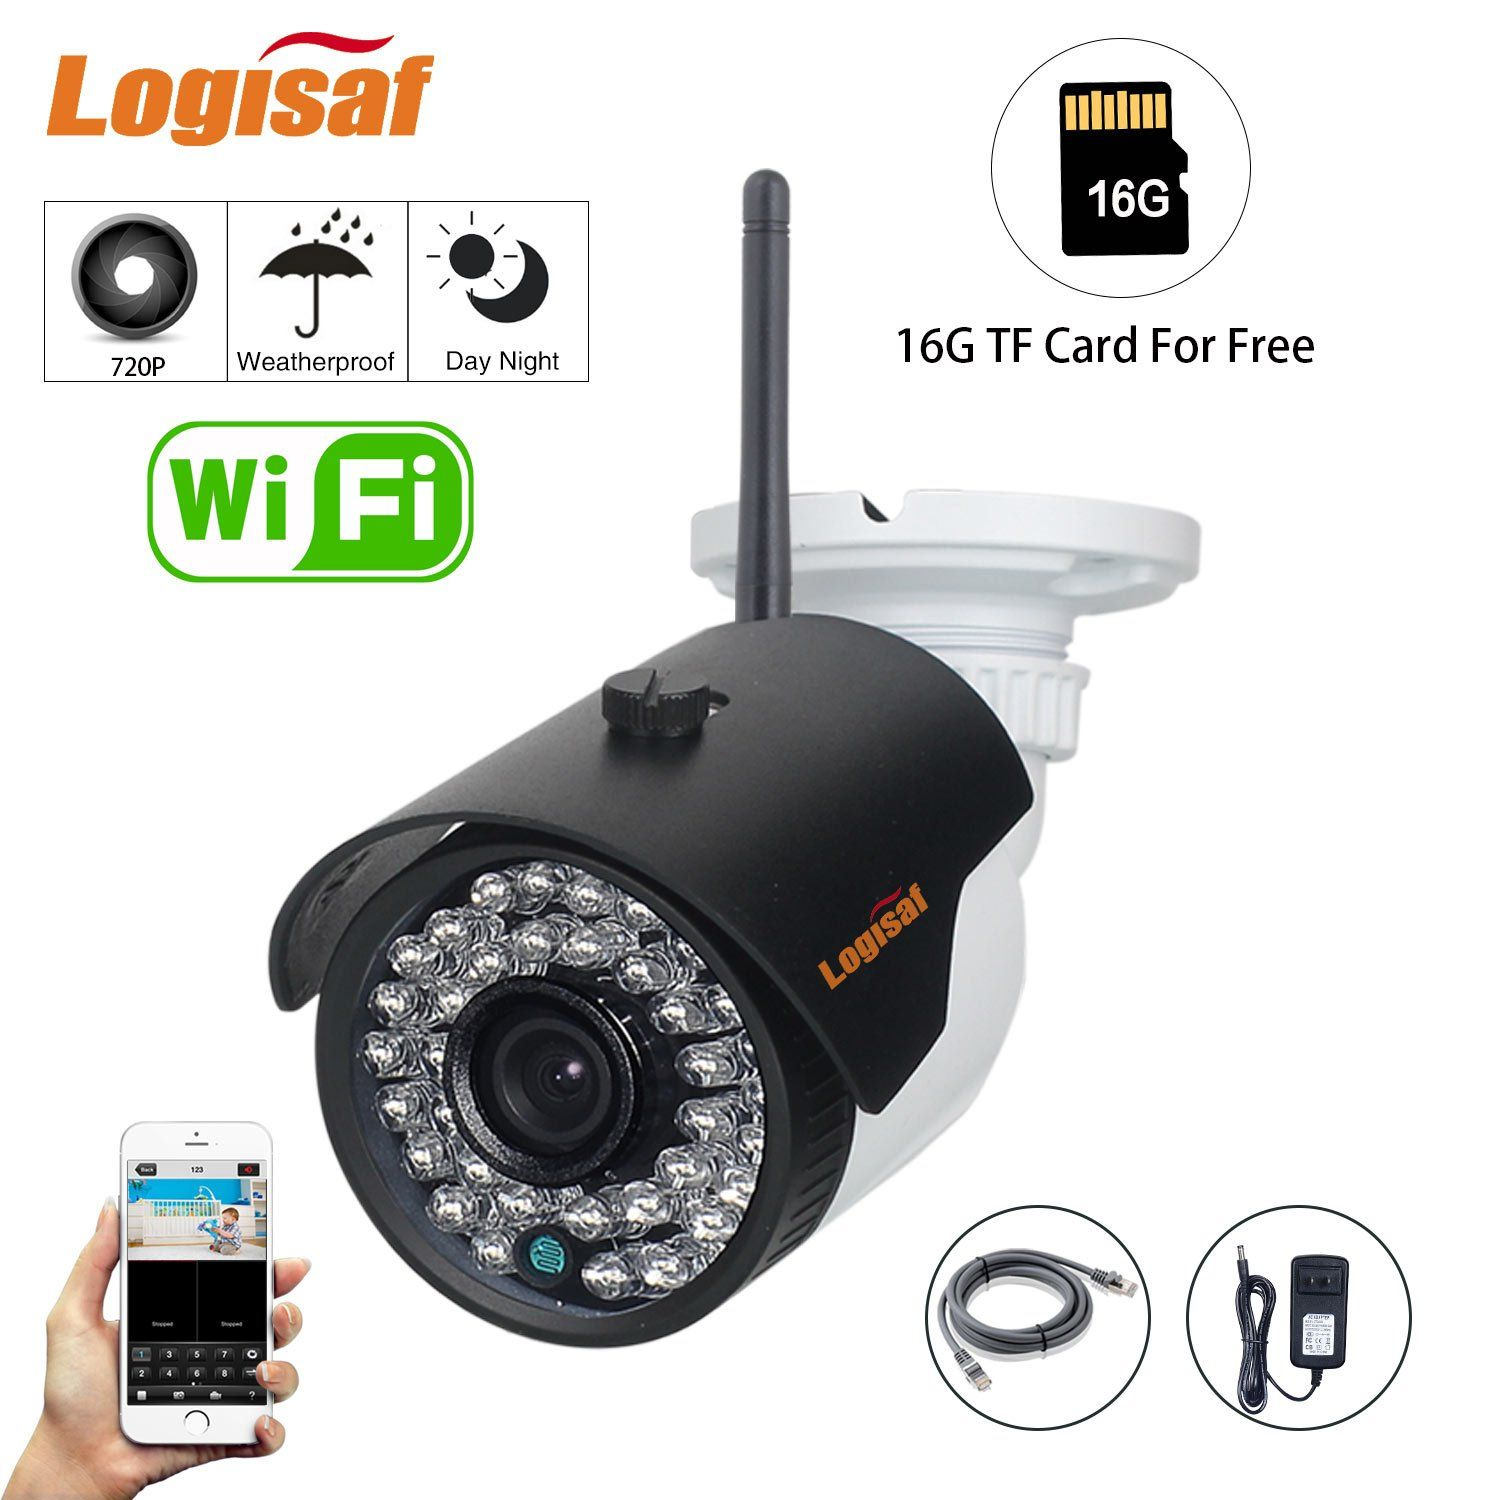 Logisaf Security IP Camera 720P HD Night Vision with 16G TF